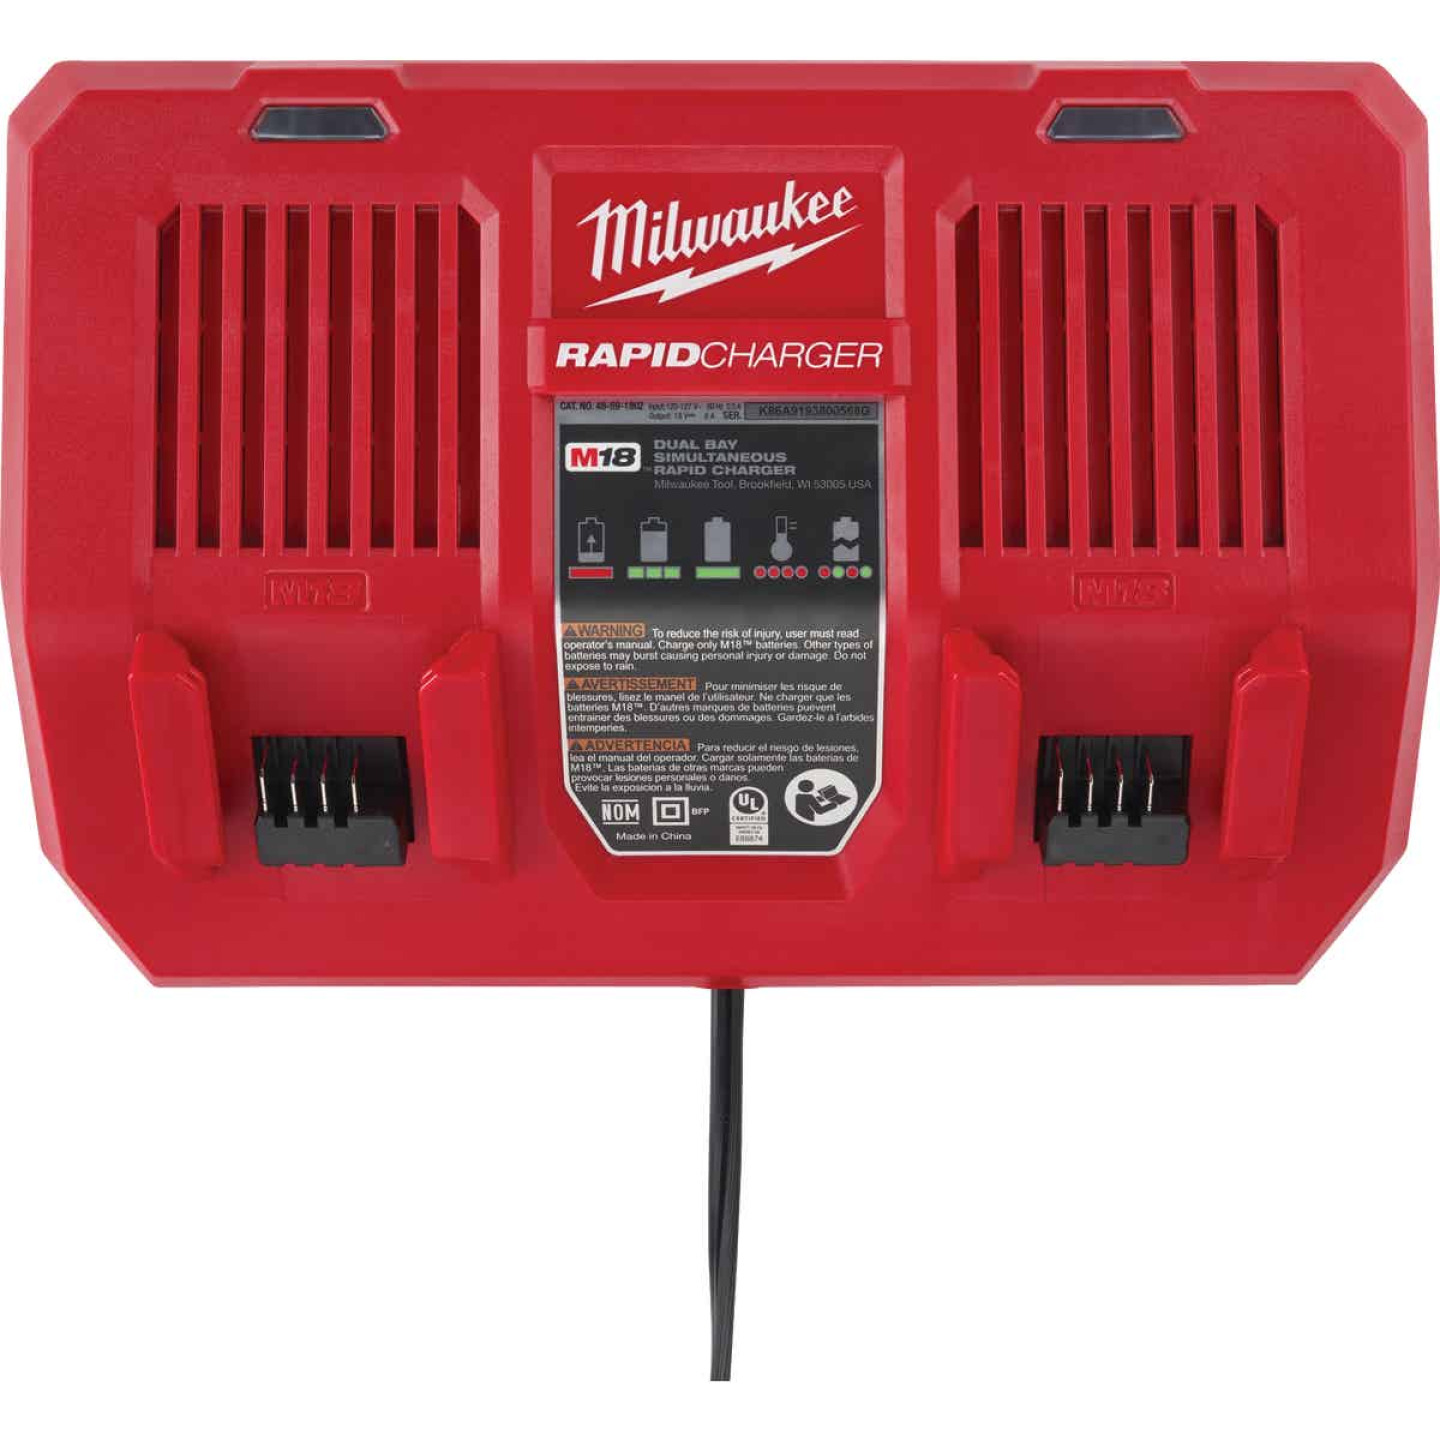 Milwaukee M18 18 Volt Lithium-Ion Dual Bay Simultaneous Rapid Battery Charger Image 1